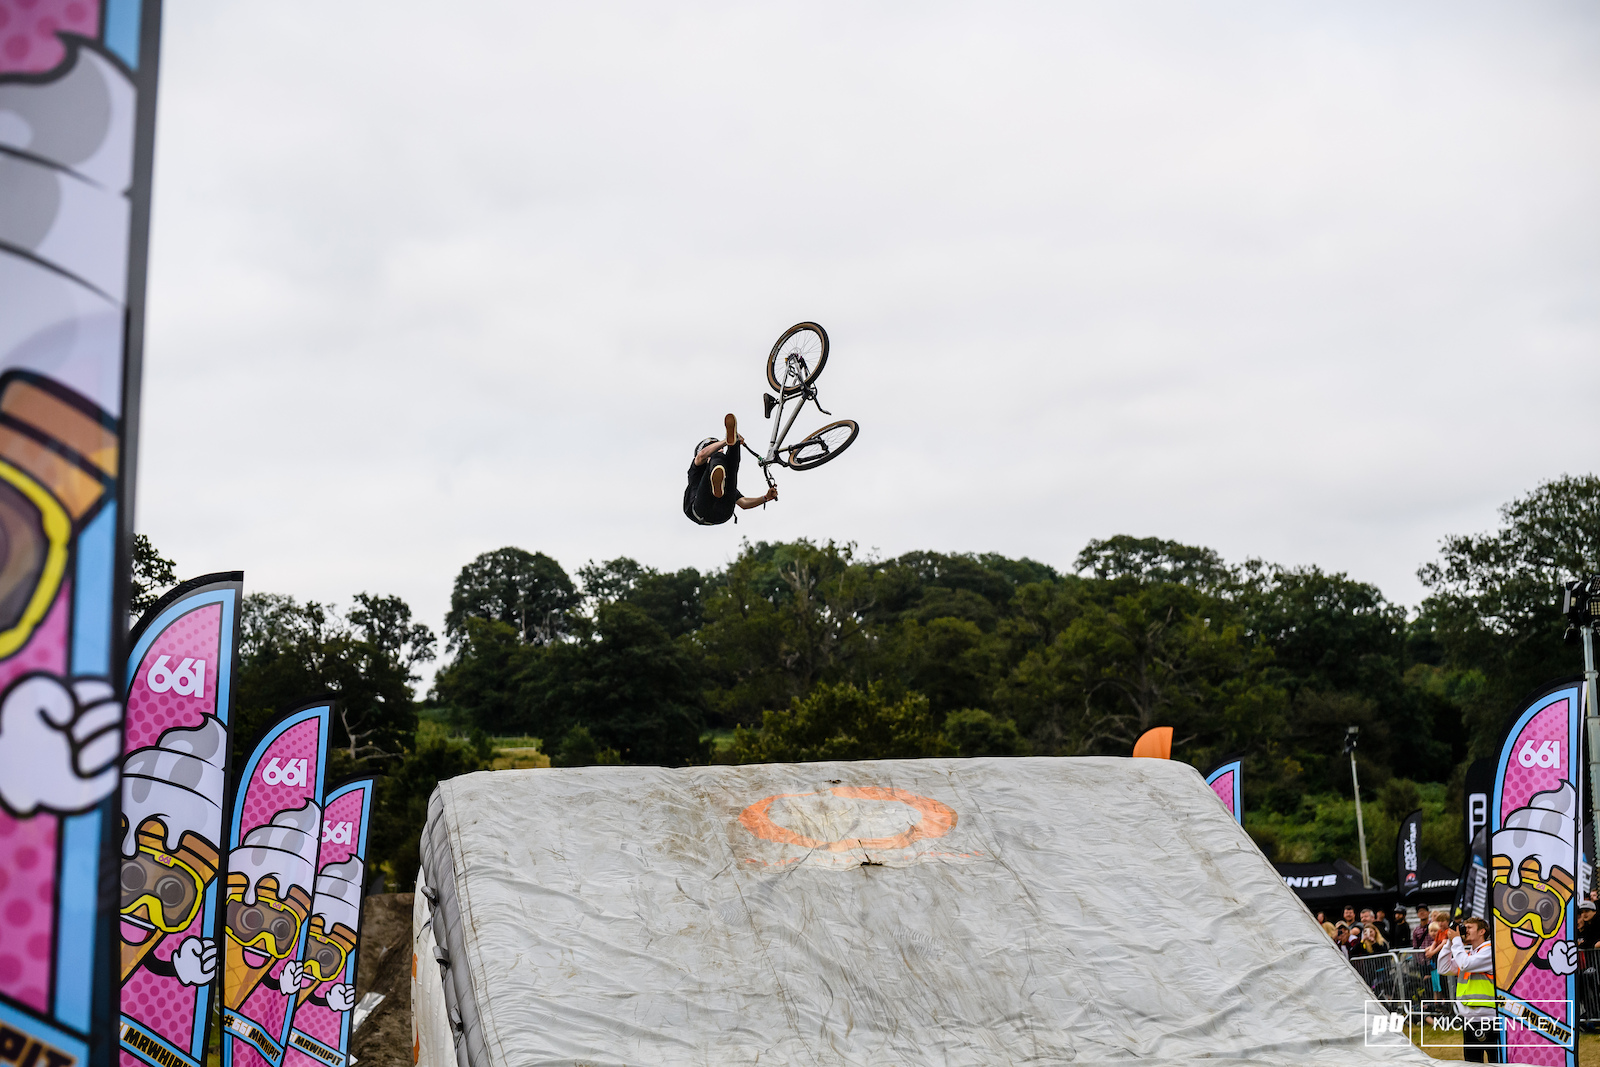 Andy Lehmann getting a bit confused between slope style and whip off sending a huge tail-whip backflip